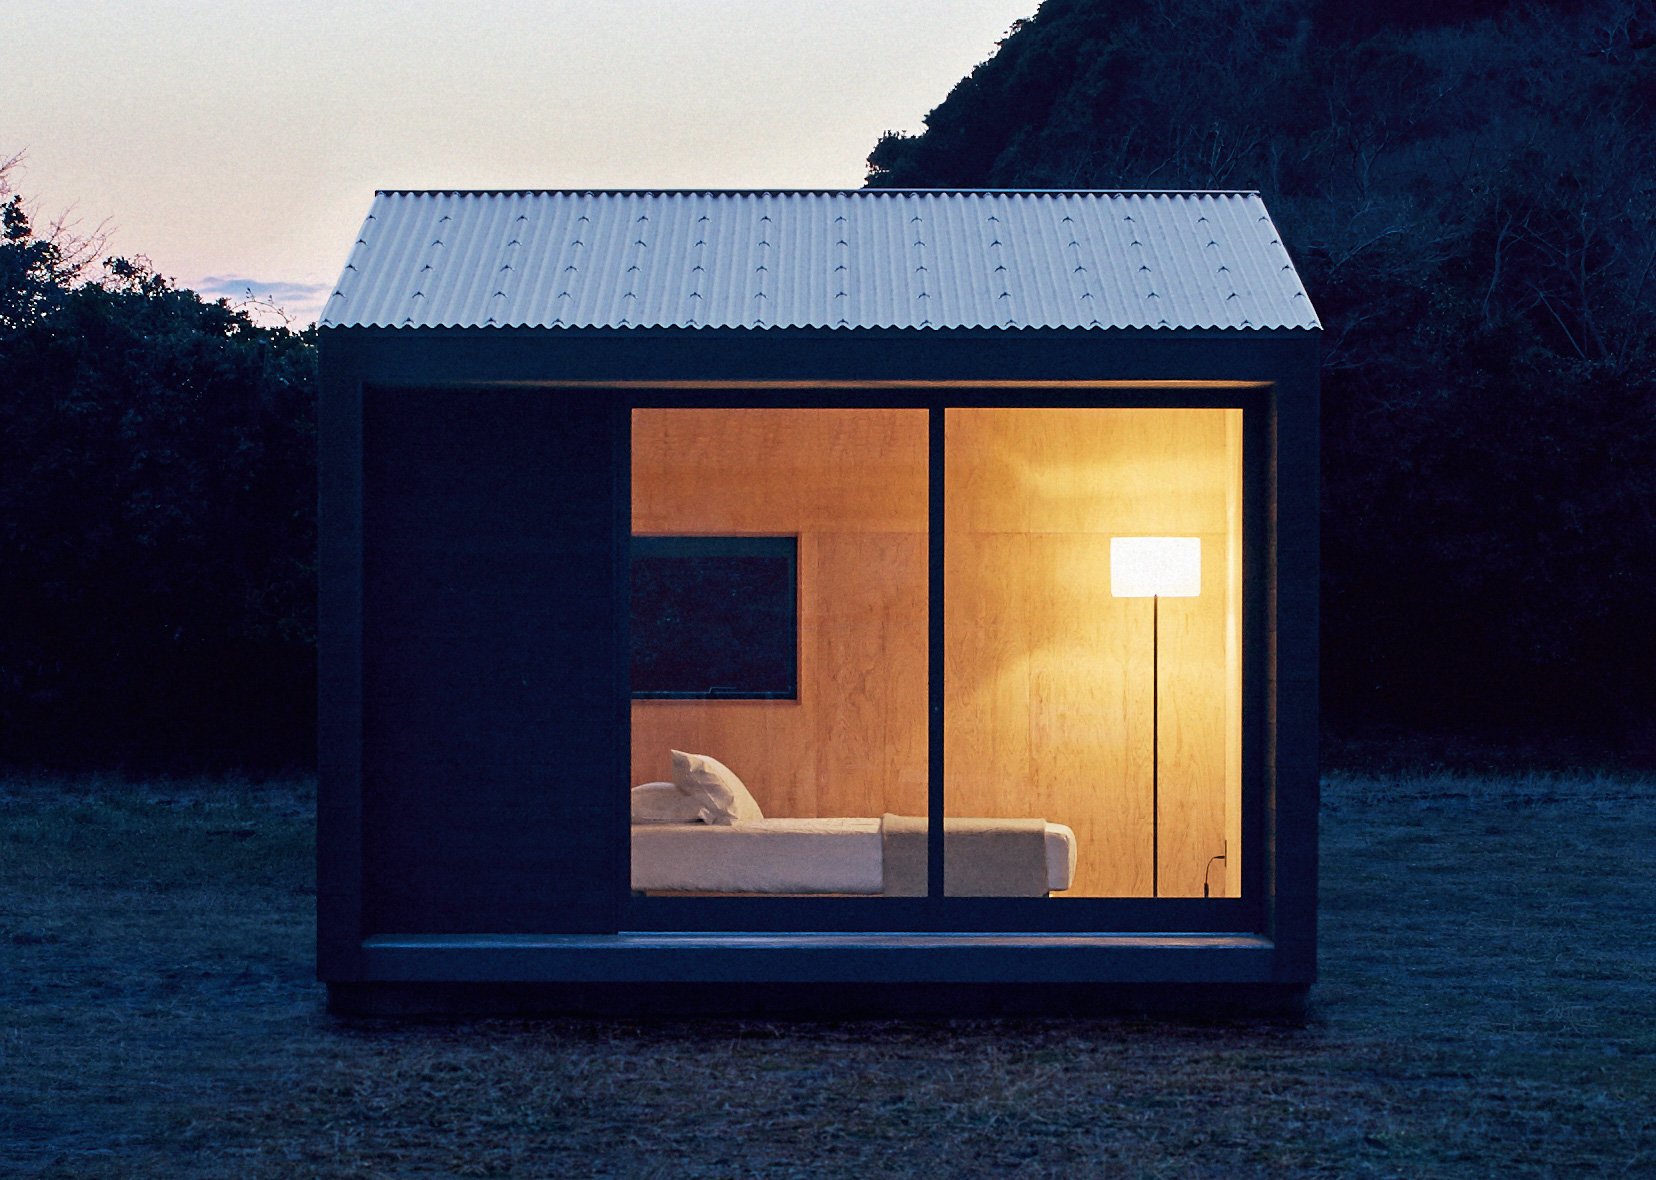 Ando tadao rokko house pinterest - Muji S New Tiny Home Will Go On Sale This Autumn In Japan